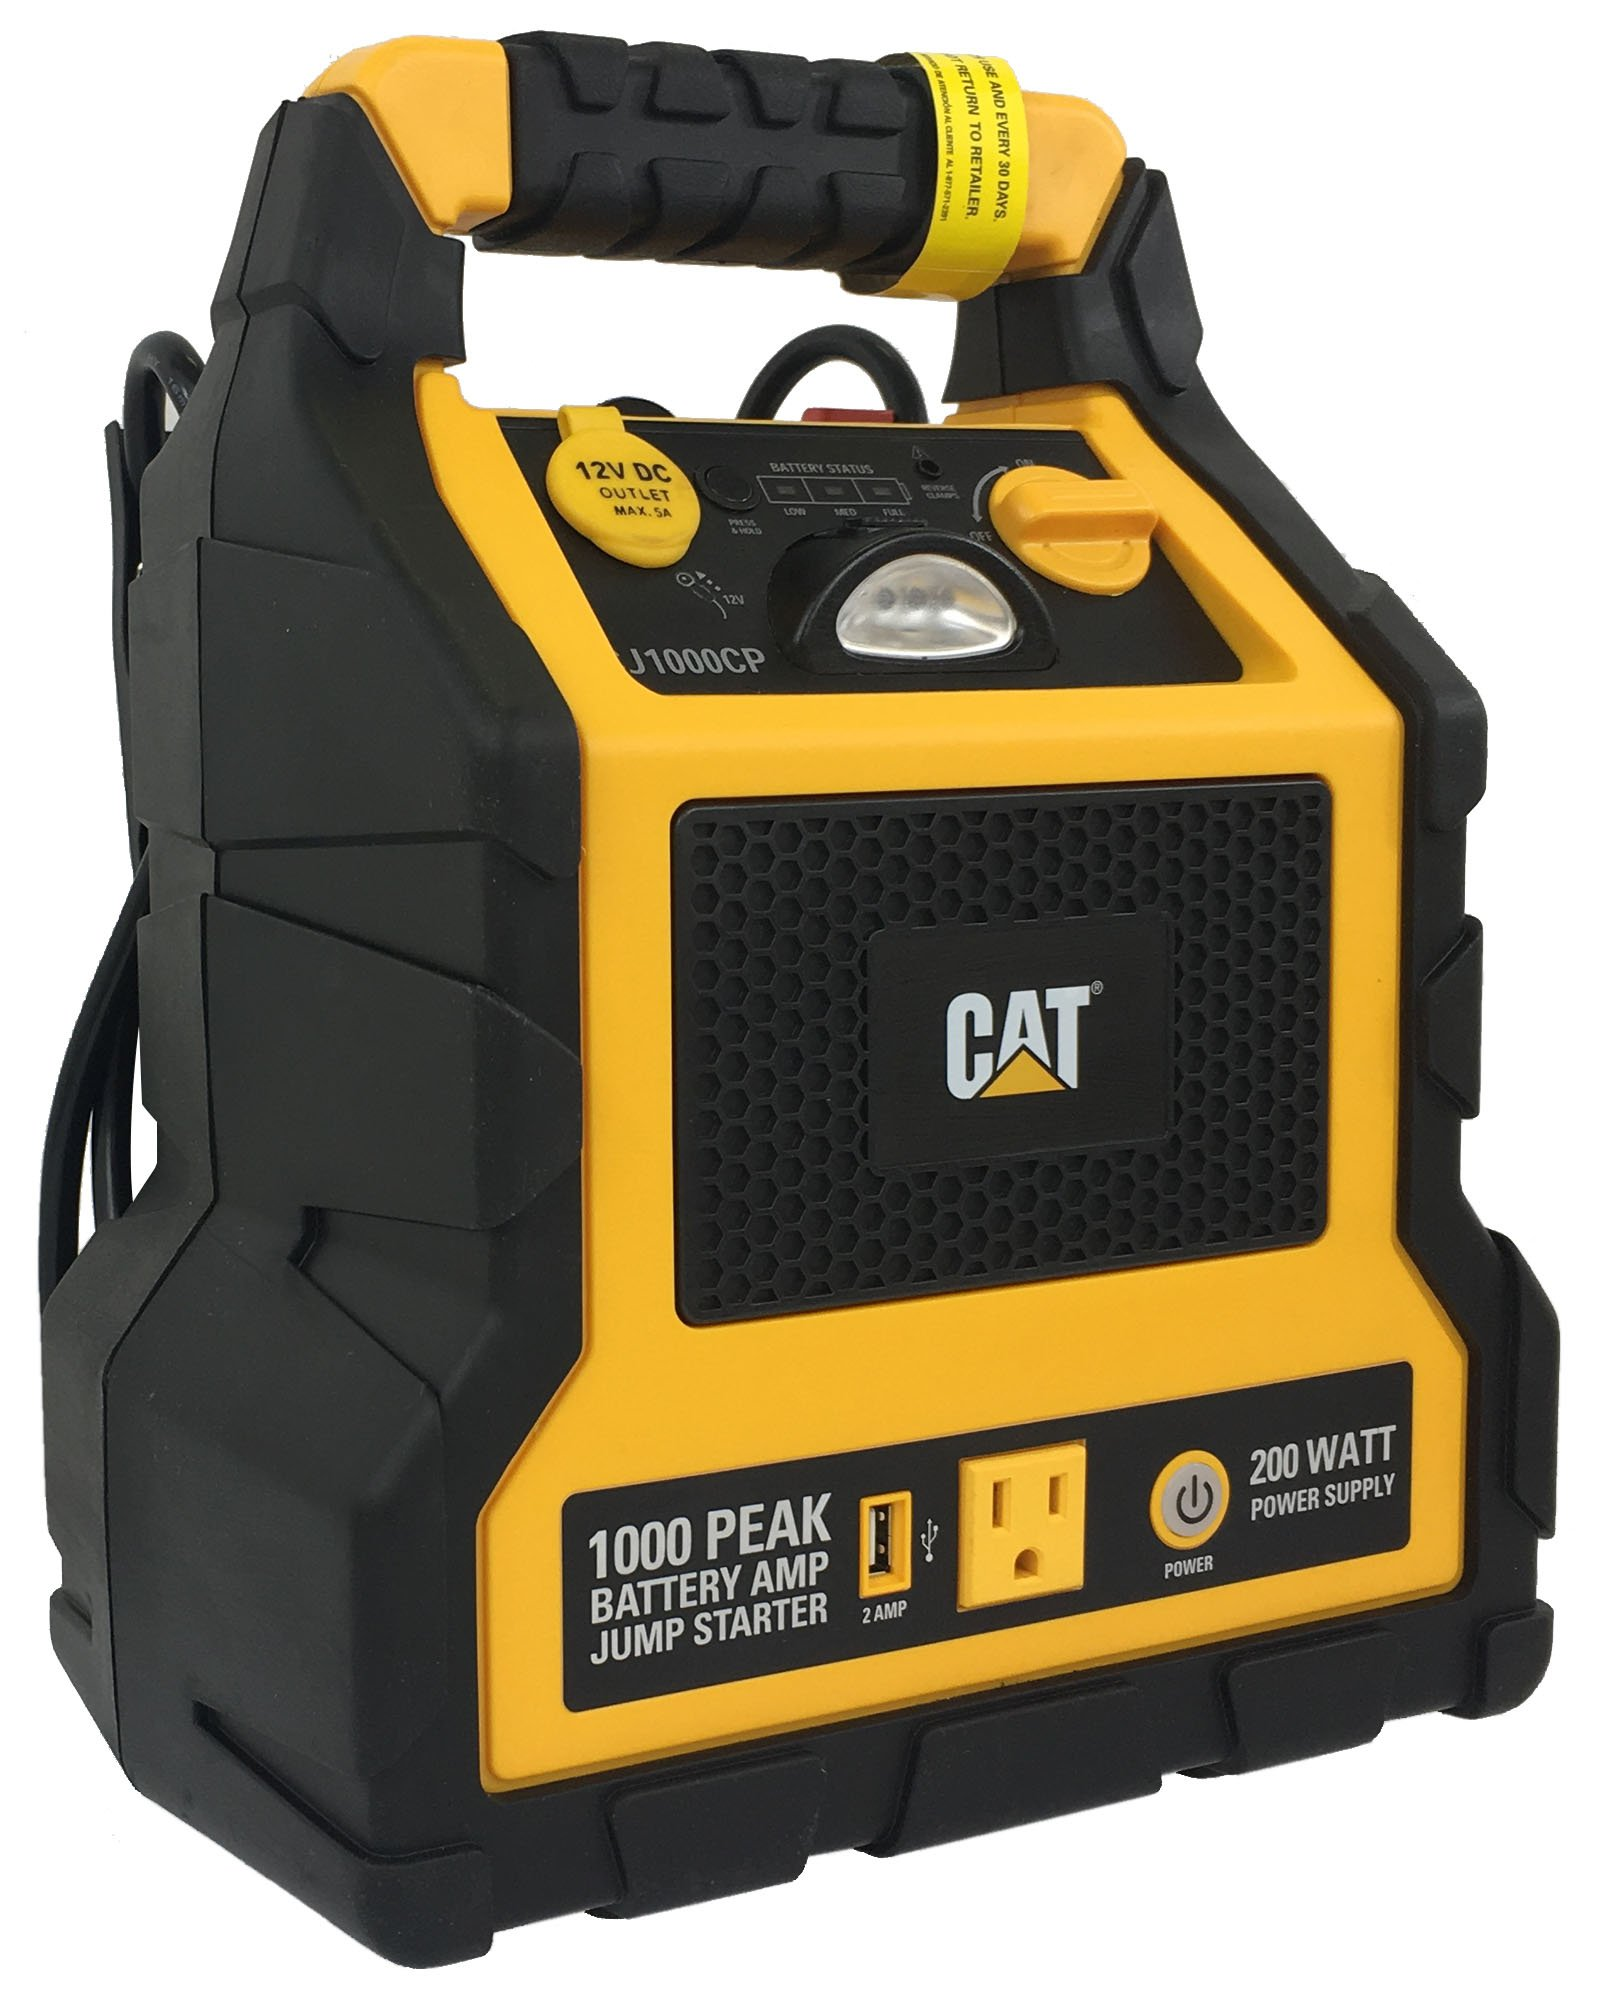 3 in 1 - CAT Professional Power Station With Jump Starter & Compressor by CAT